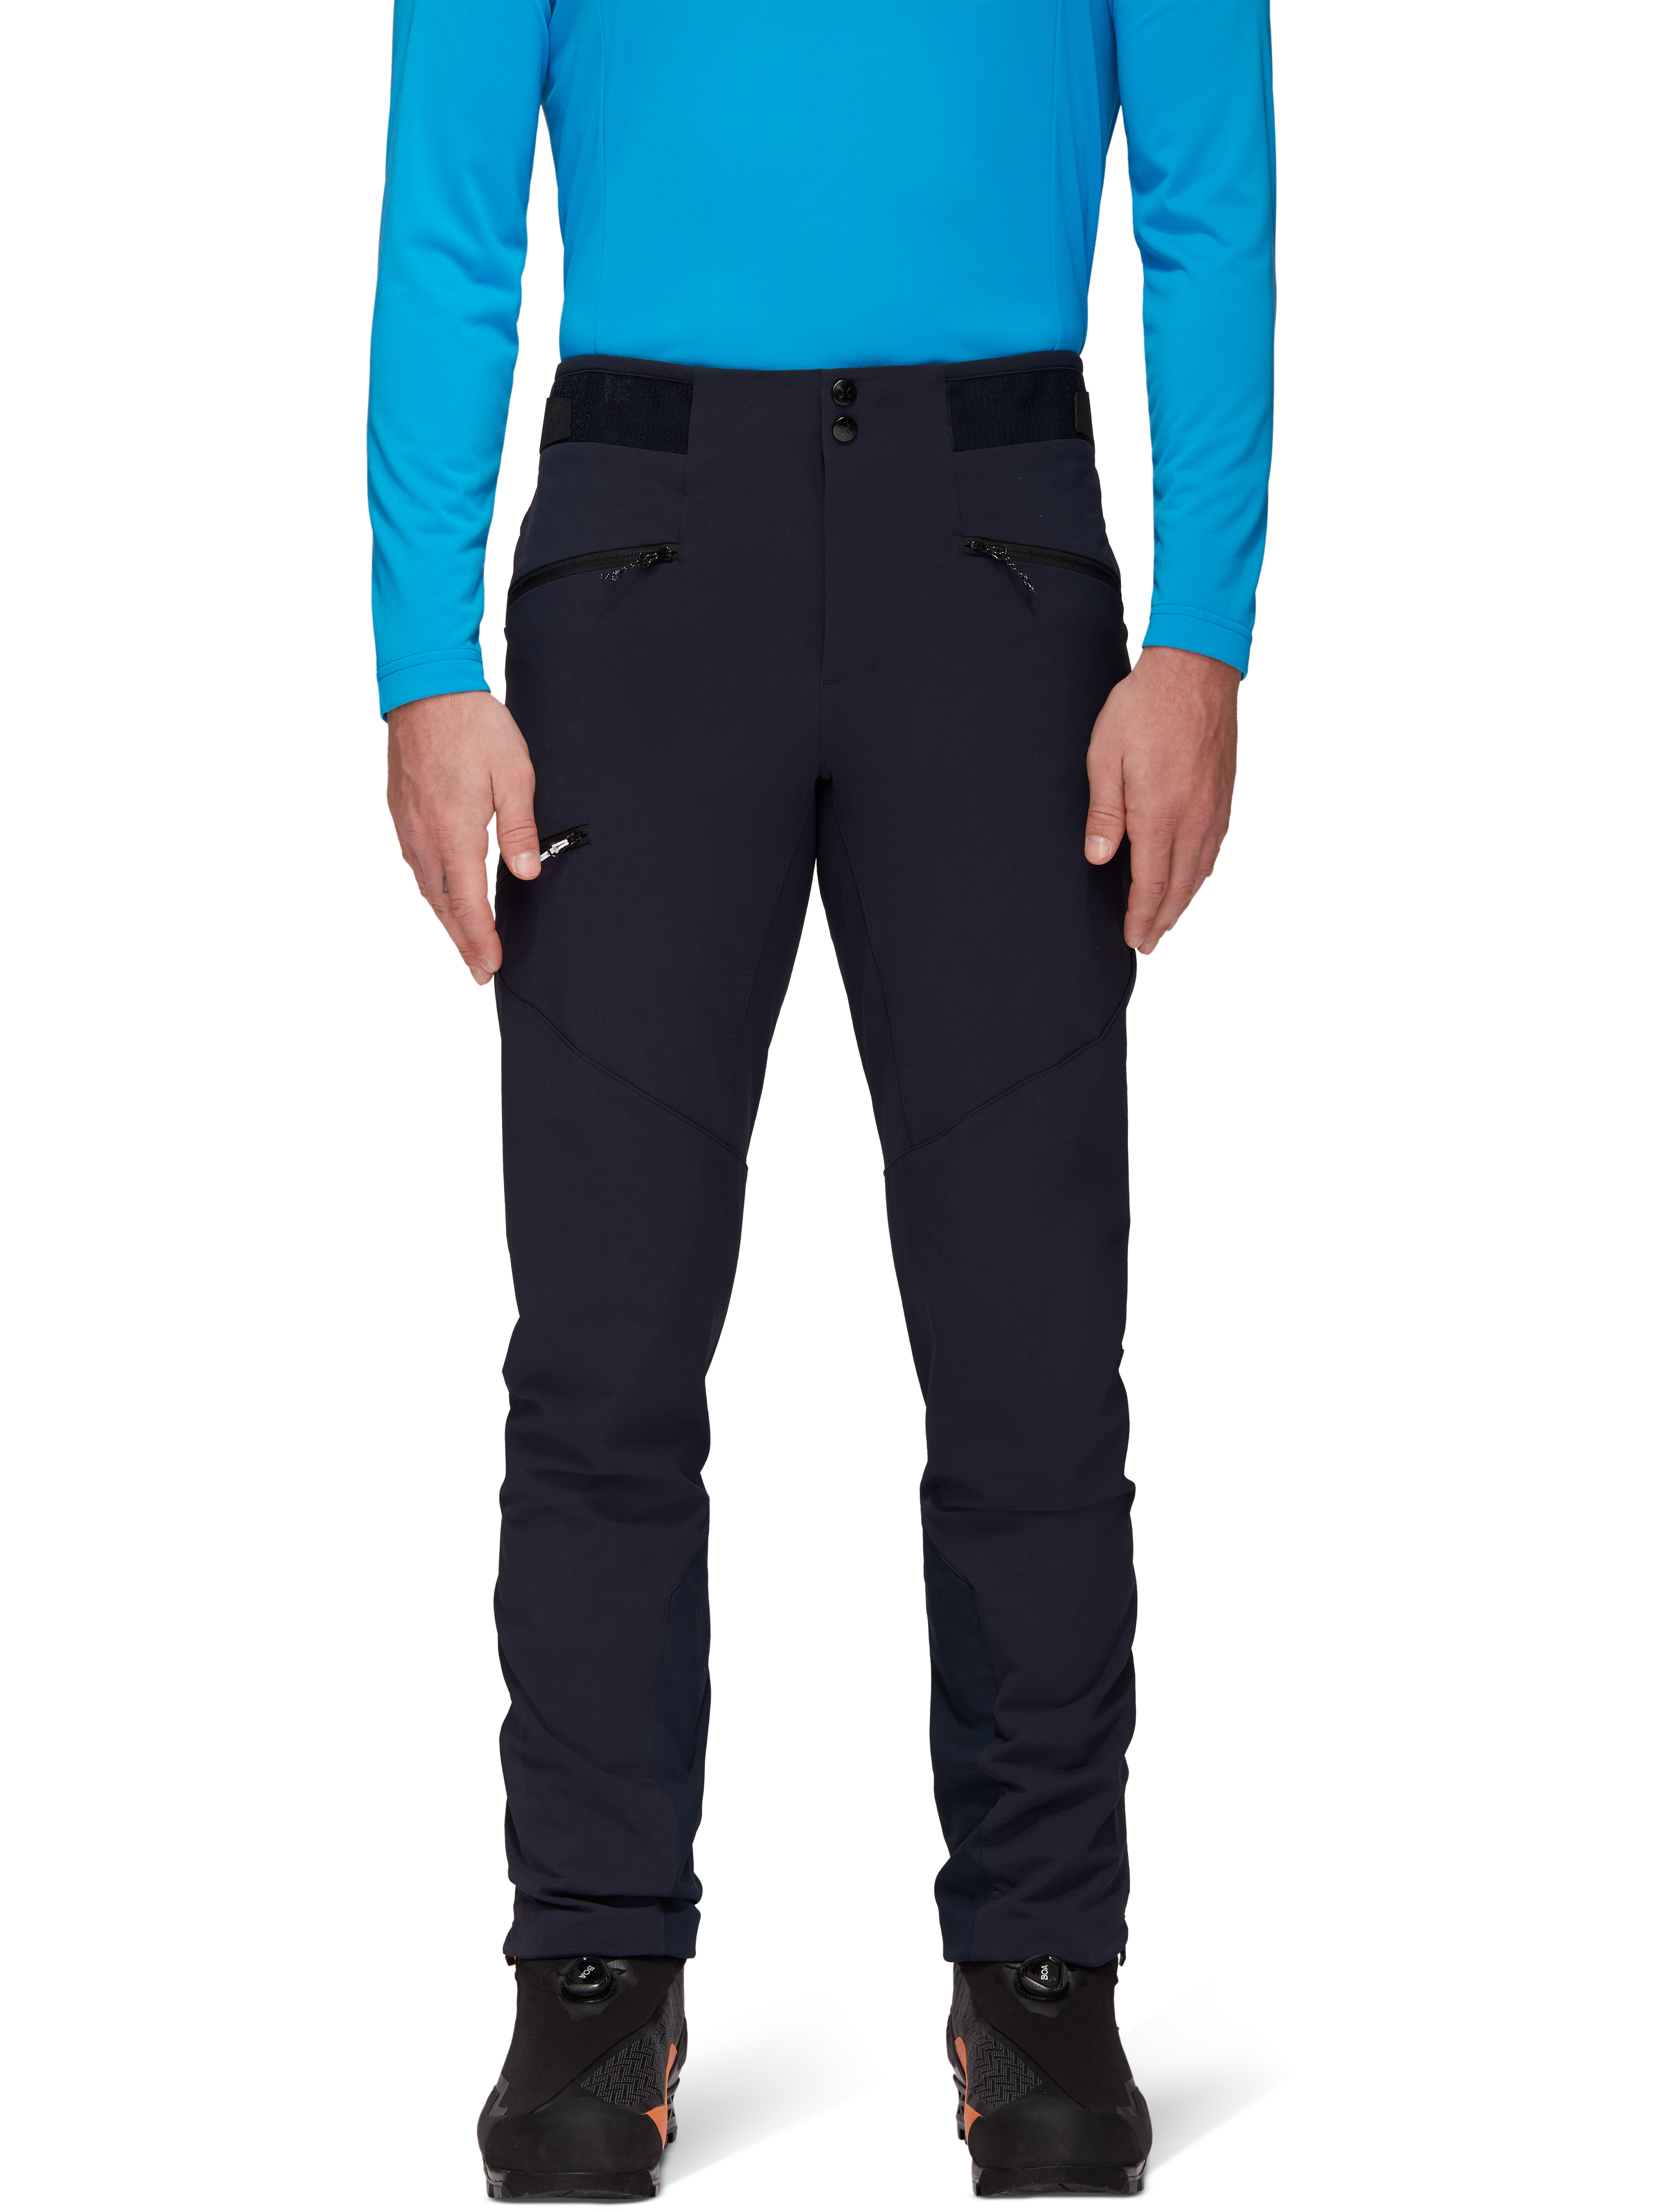 Eisfeld Advanced SO Pants Men product image